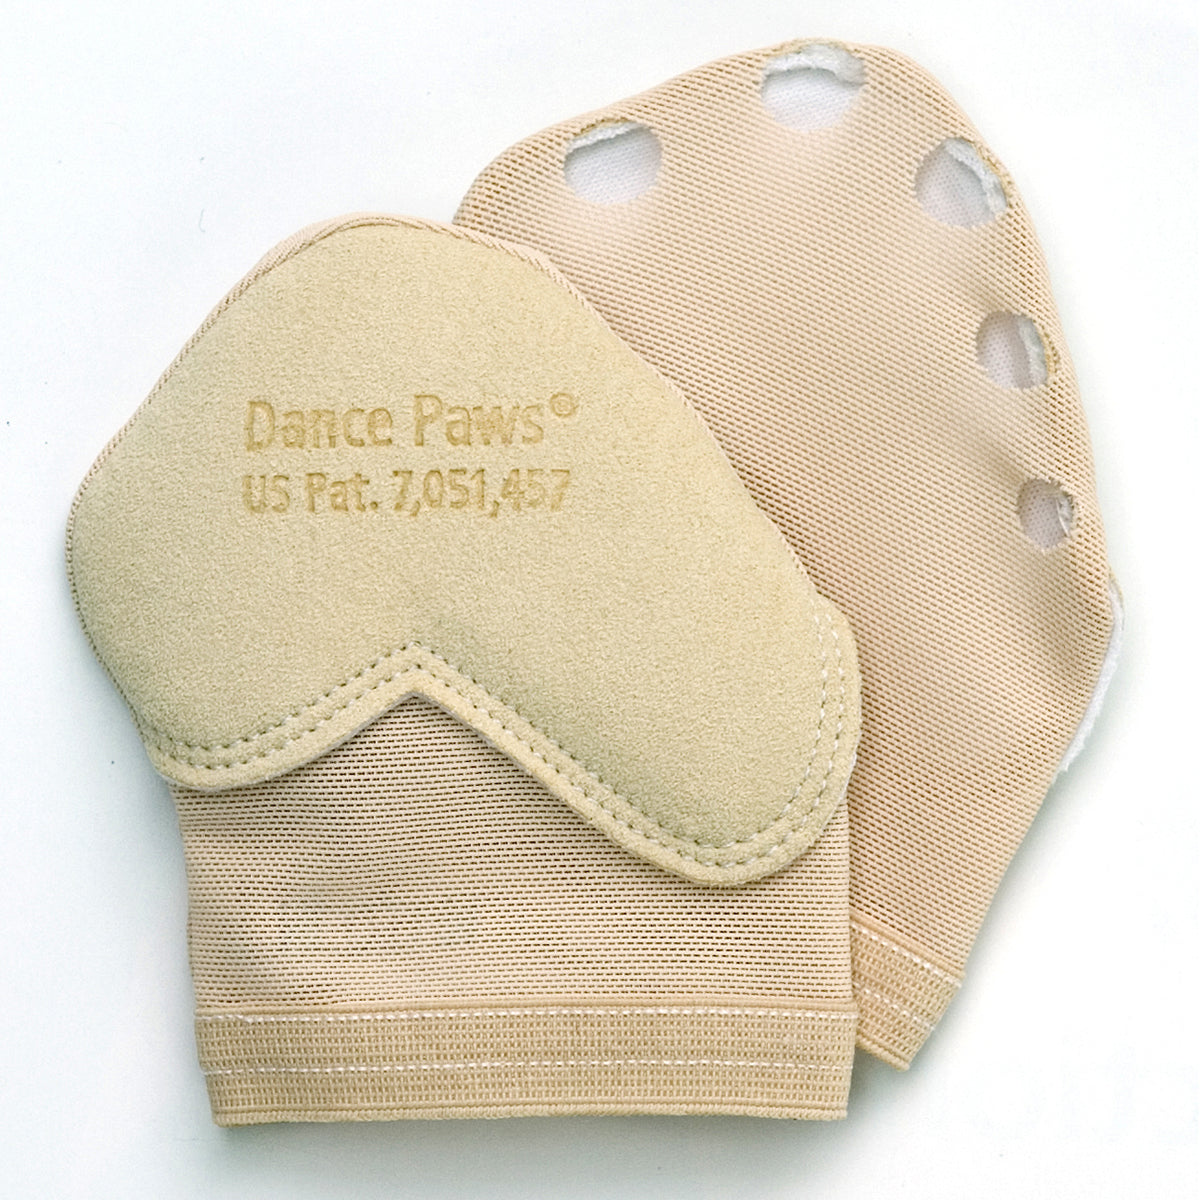 Dance Paws - Basic Sole